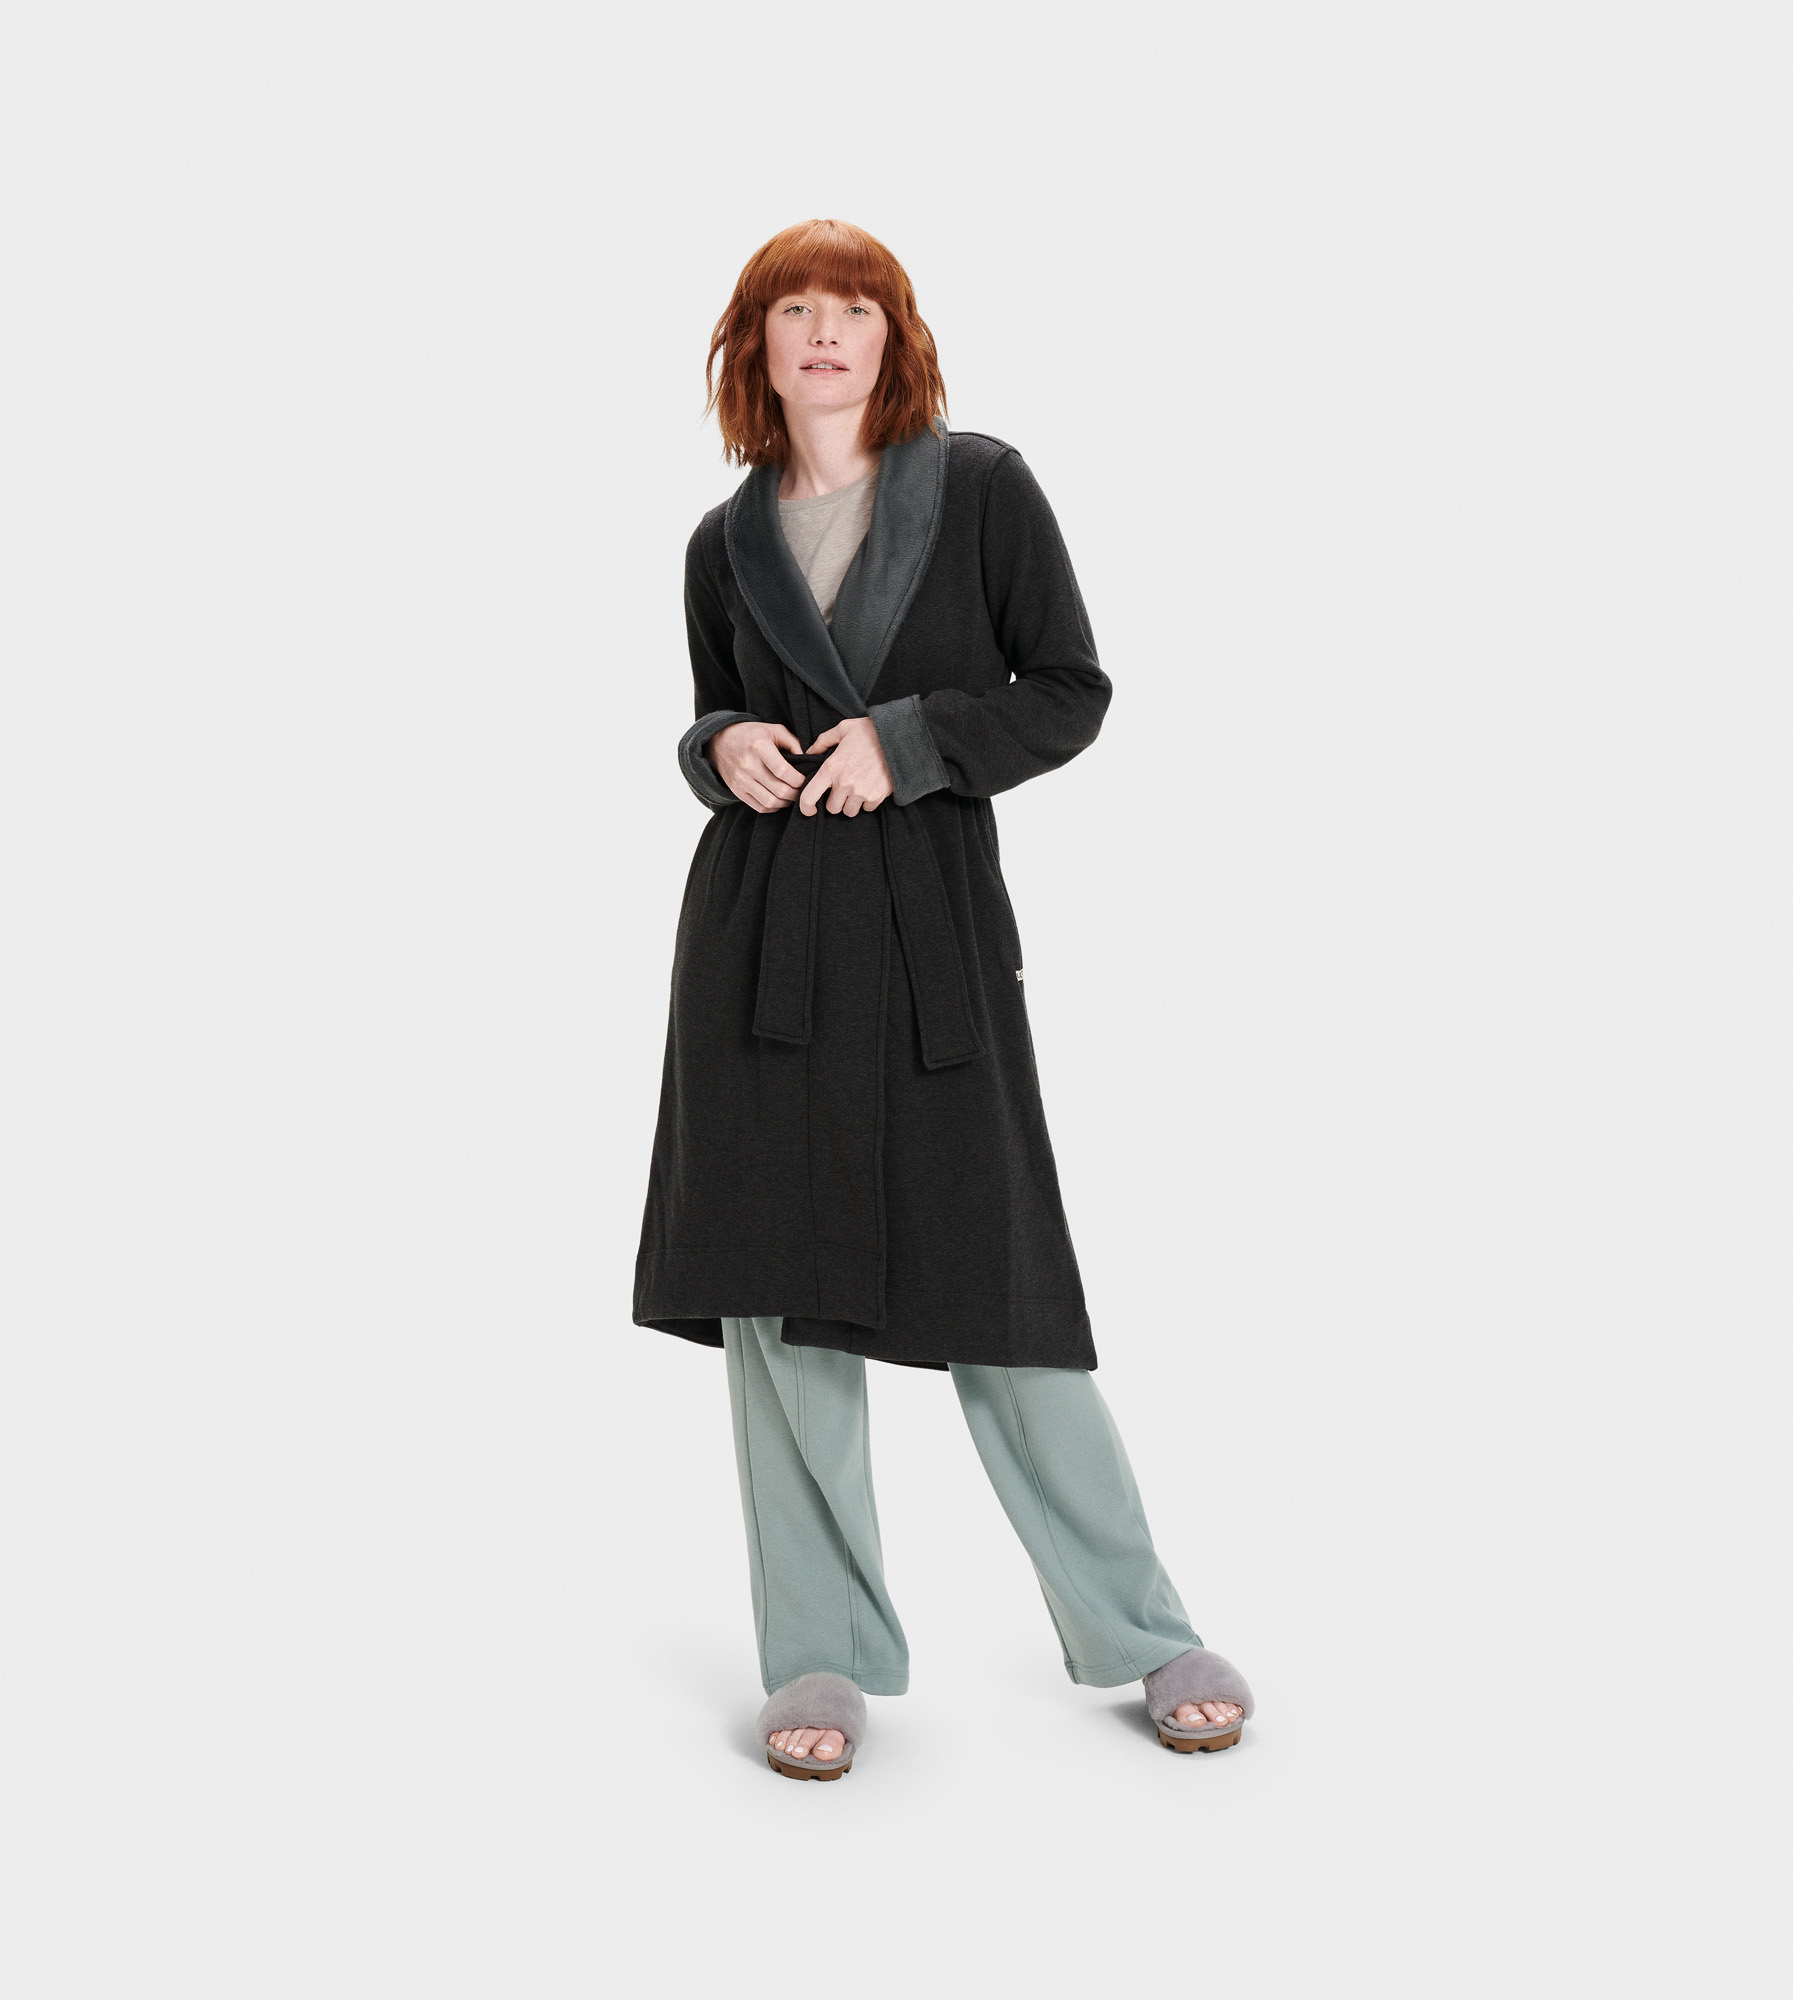 UGG Women's Duffield II Fleece Sleepwear in Black, Size M Our best-selling robe, the Duffield is crafted from soft fleece, so it feels like wrapping yourself in a blanket. Pair with our fluffy slippers and pretend it's the weekend. Double knit fleece: 94% Cotton, 6% Elastane, 100% Polyester pile. Self belt. On-seam side pockets. 43.5  center back length. UGG Women's Duffield II Fleece Sleepwear in Black, Size M